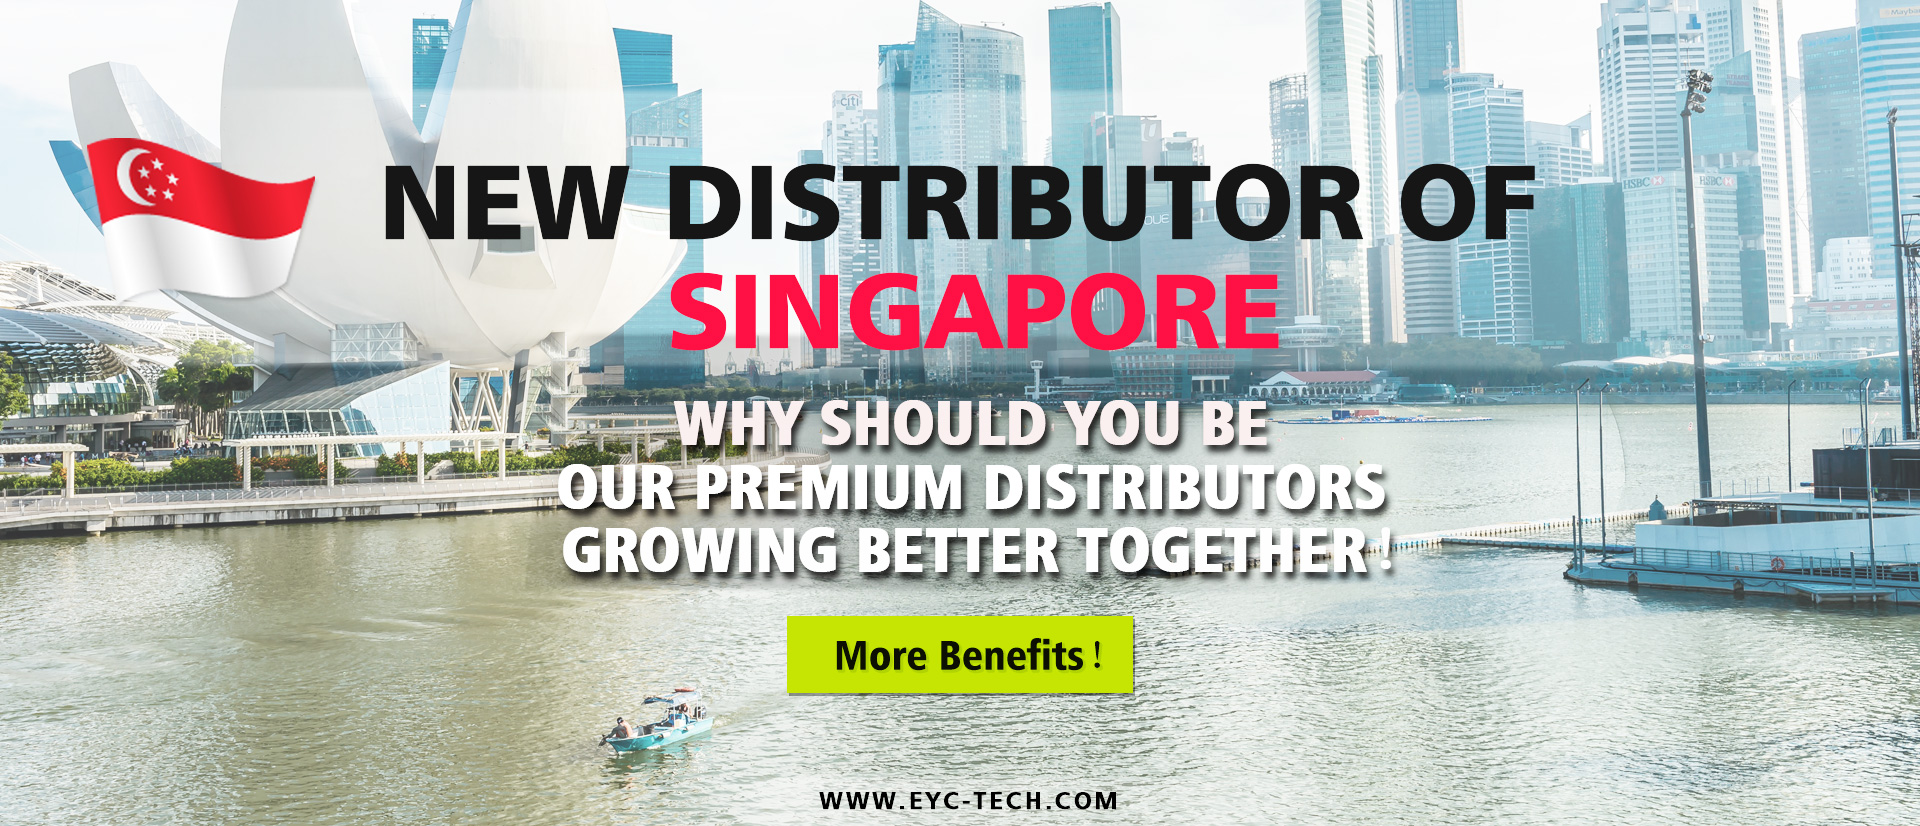 eYc New Premium Distributor of Singapore 2018